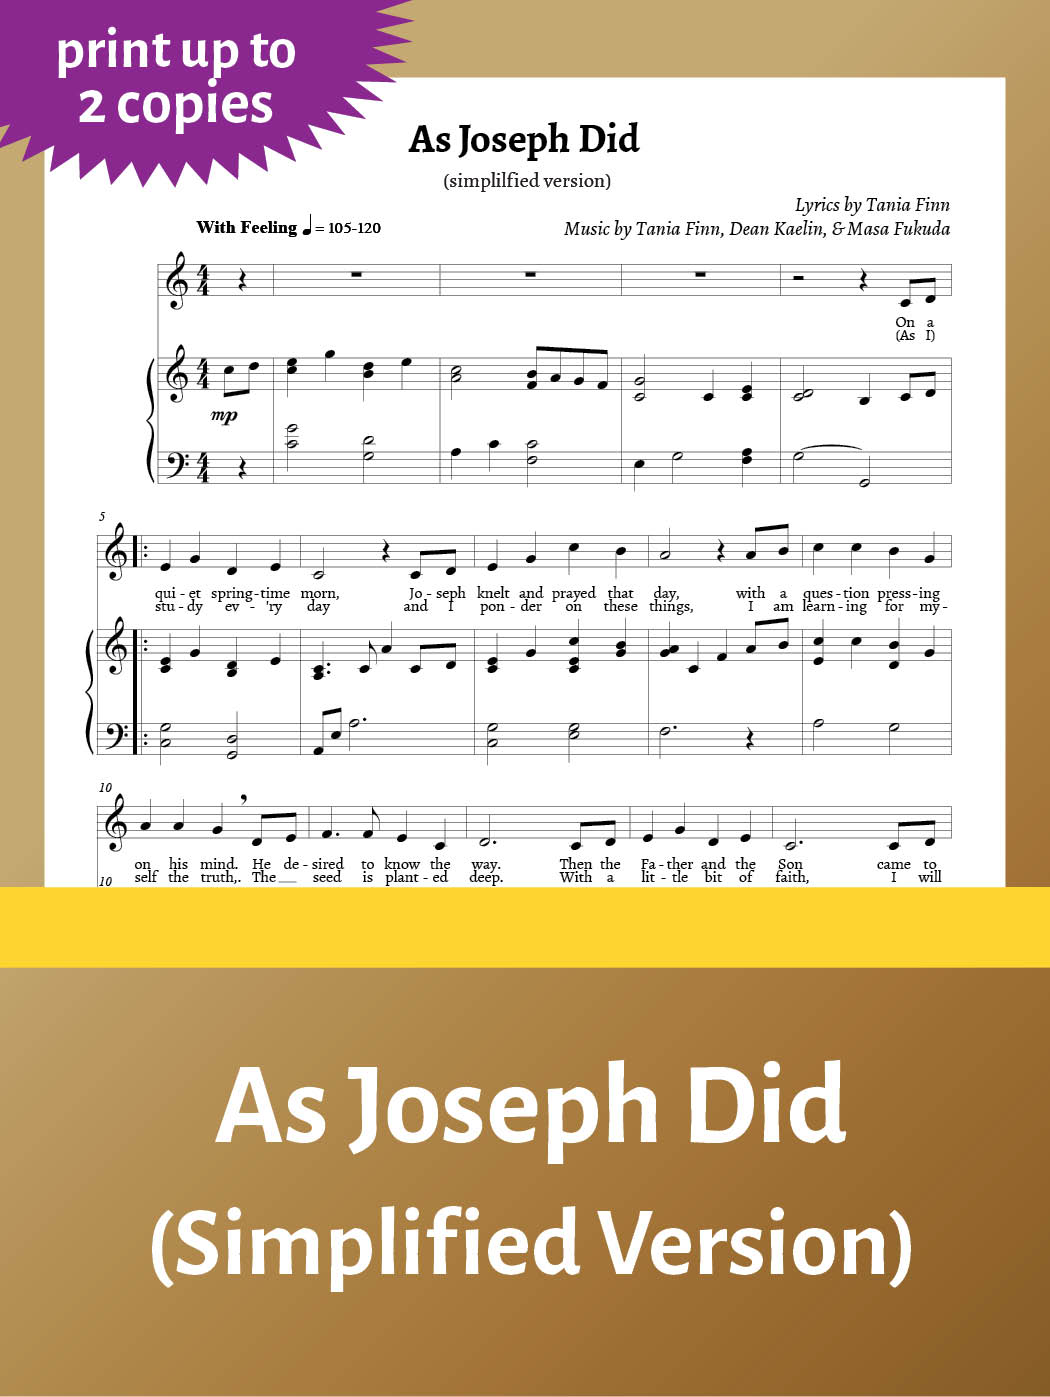 As Joseph Did – Sheet Music – simplified – up to 2 copies